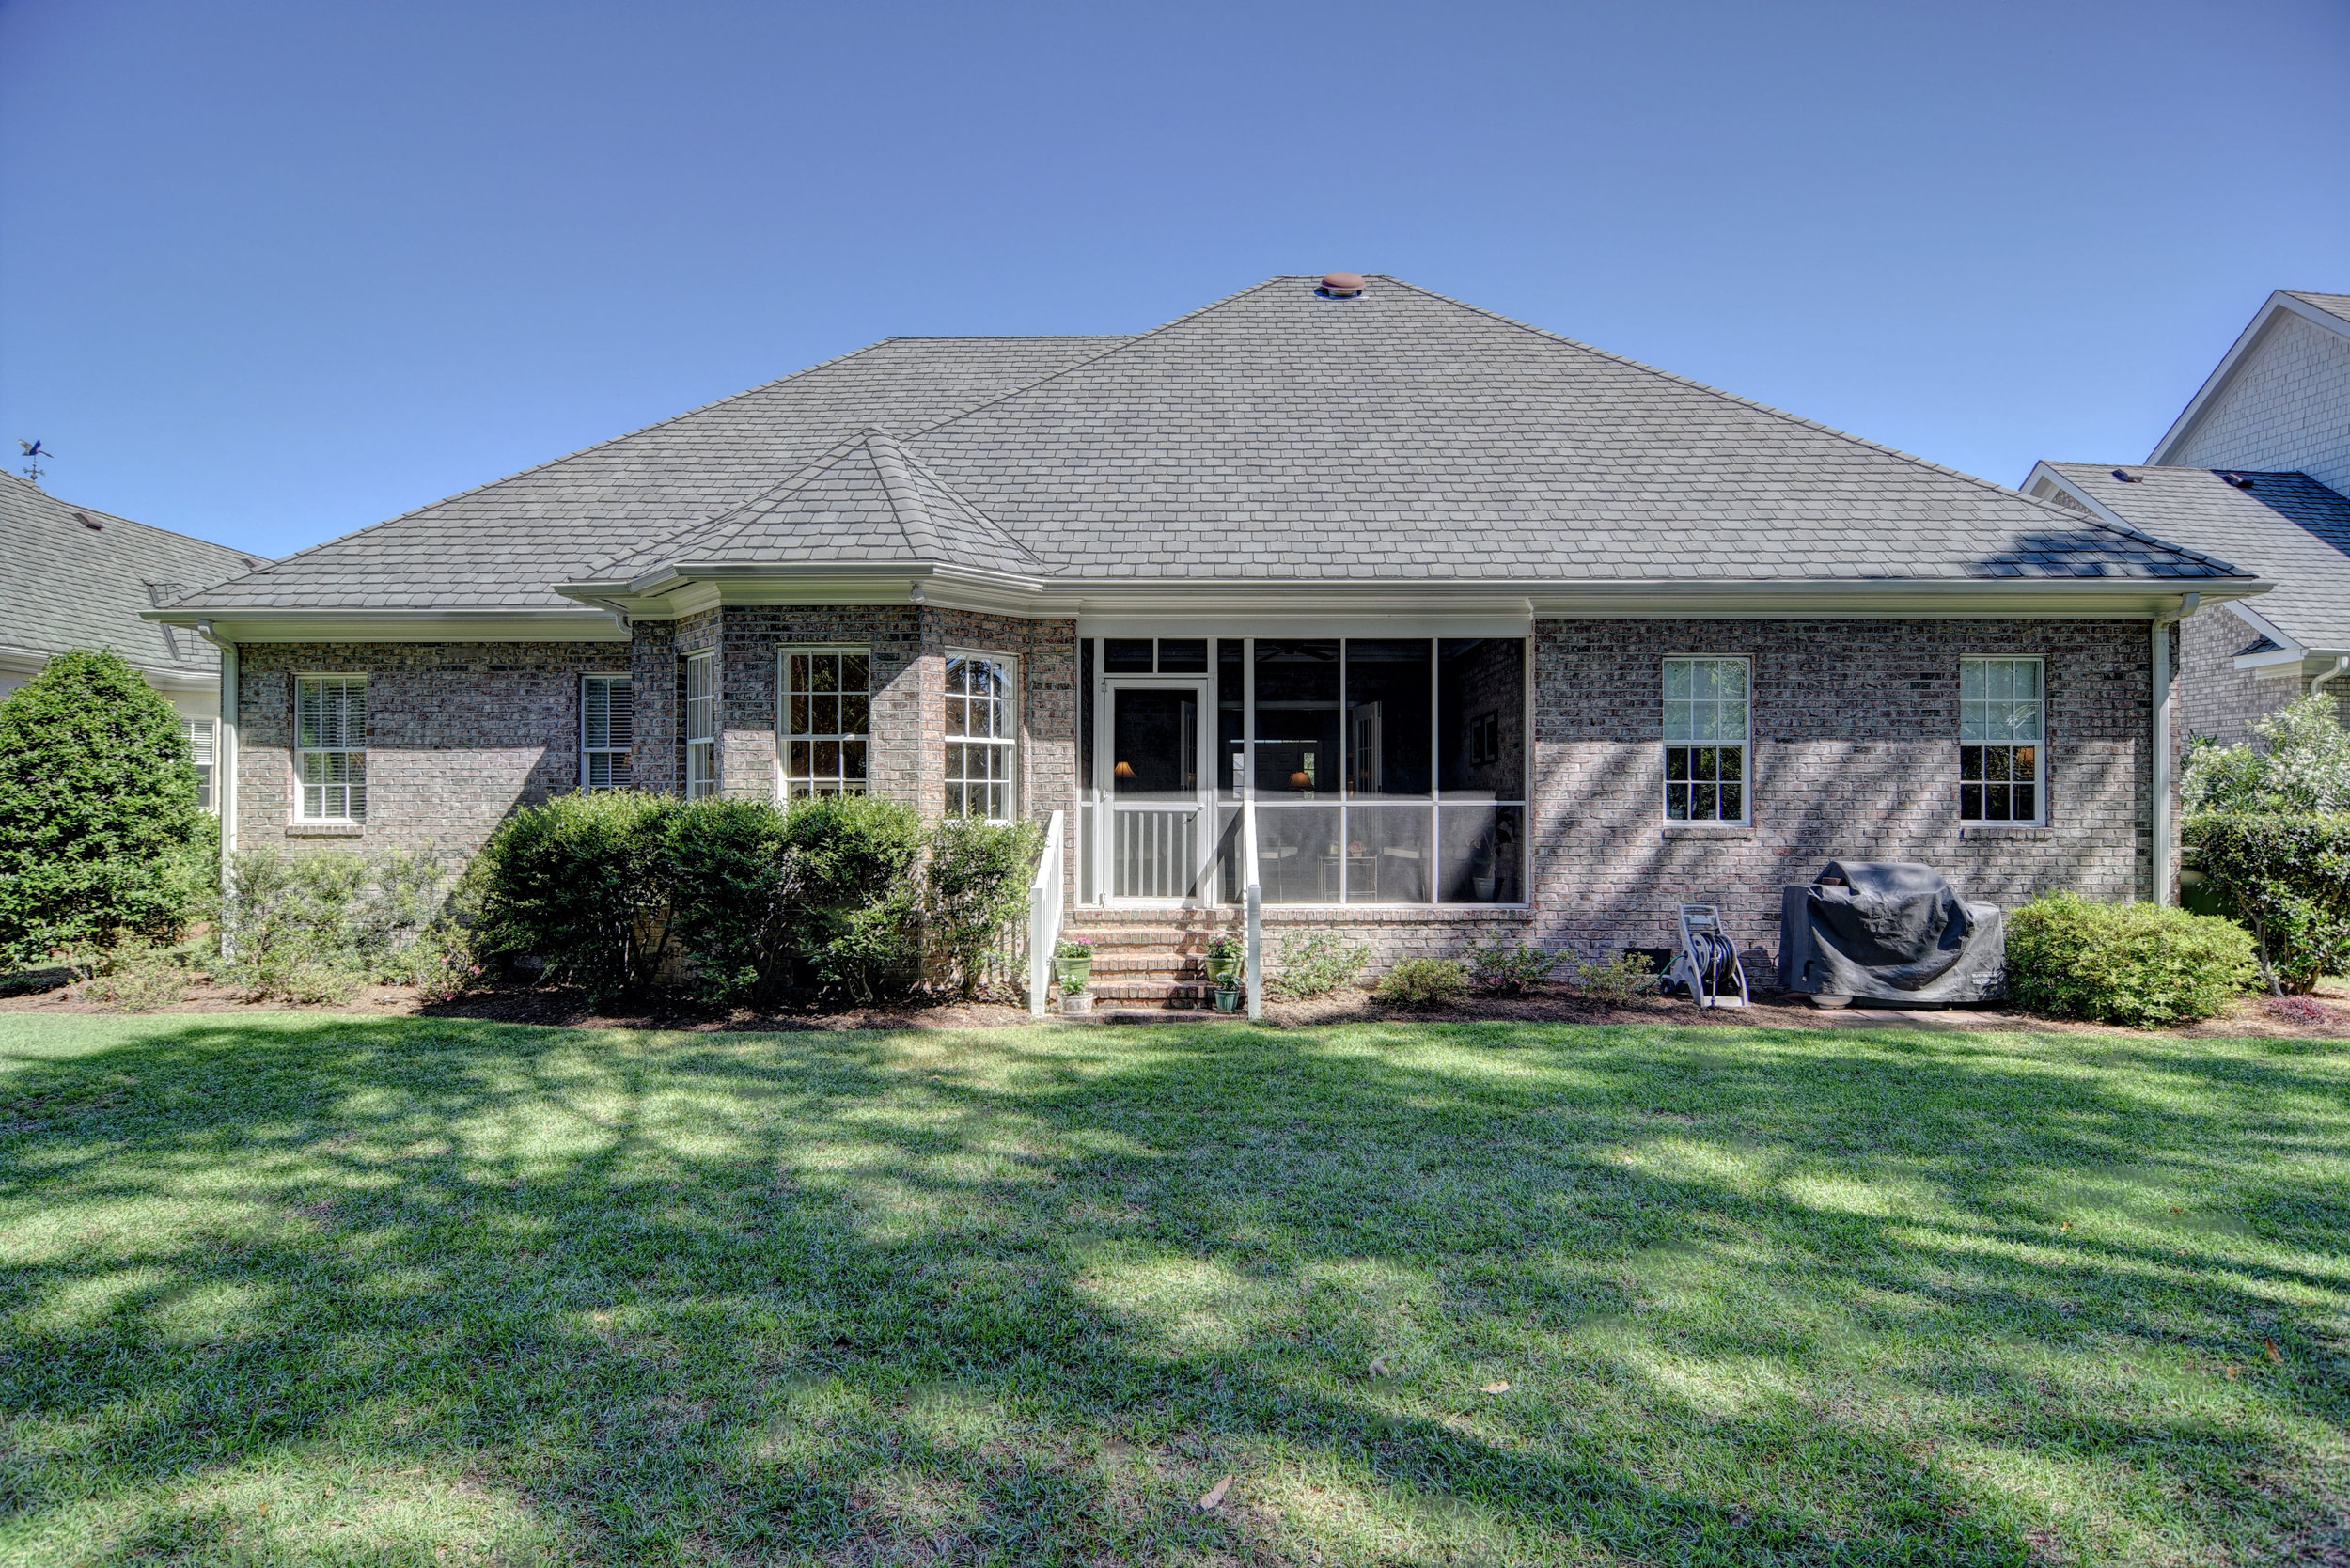 2114 Bay Colony Ln Wilmington-print-030-28-Rear Exterior-4200x2802-300dpi.jpg